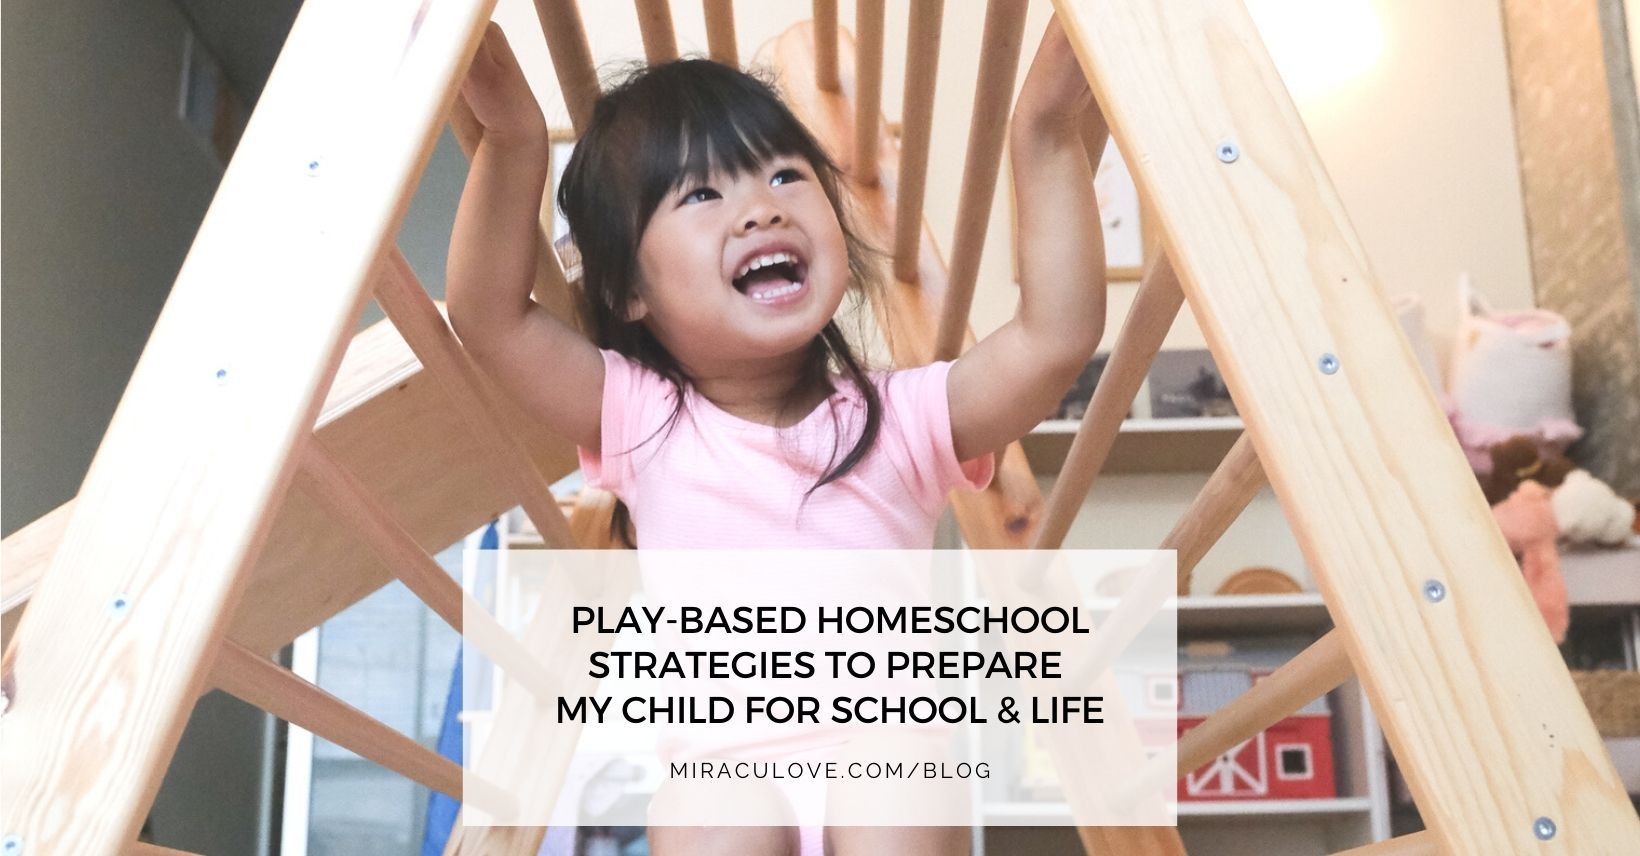 Play-based Homeschool Strategies to Prepare My Child for School & Life